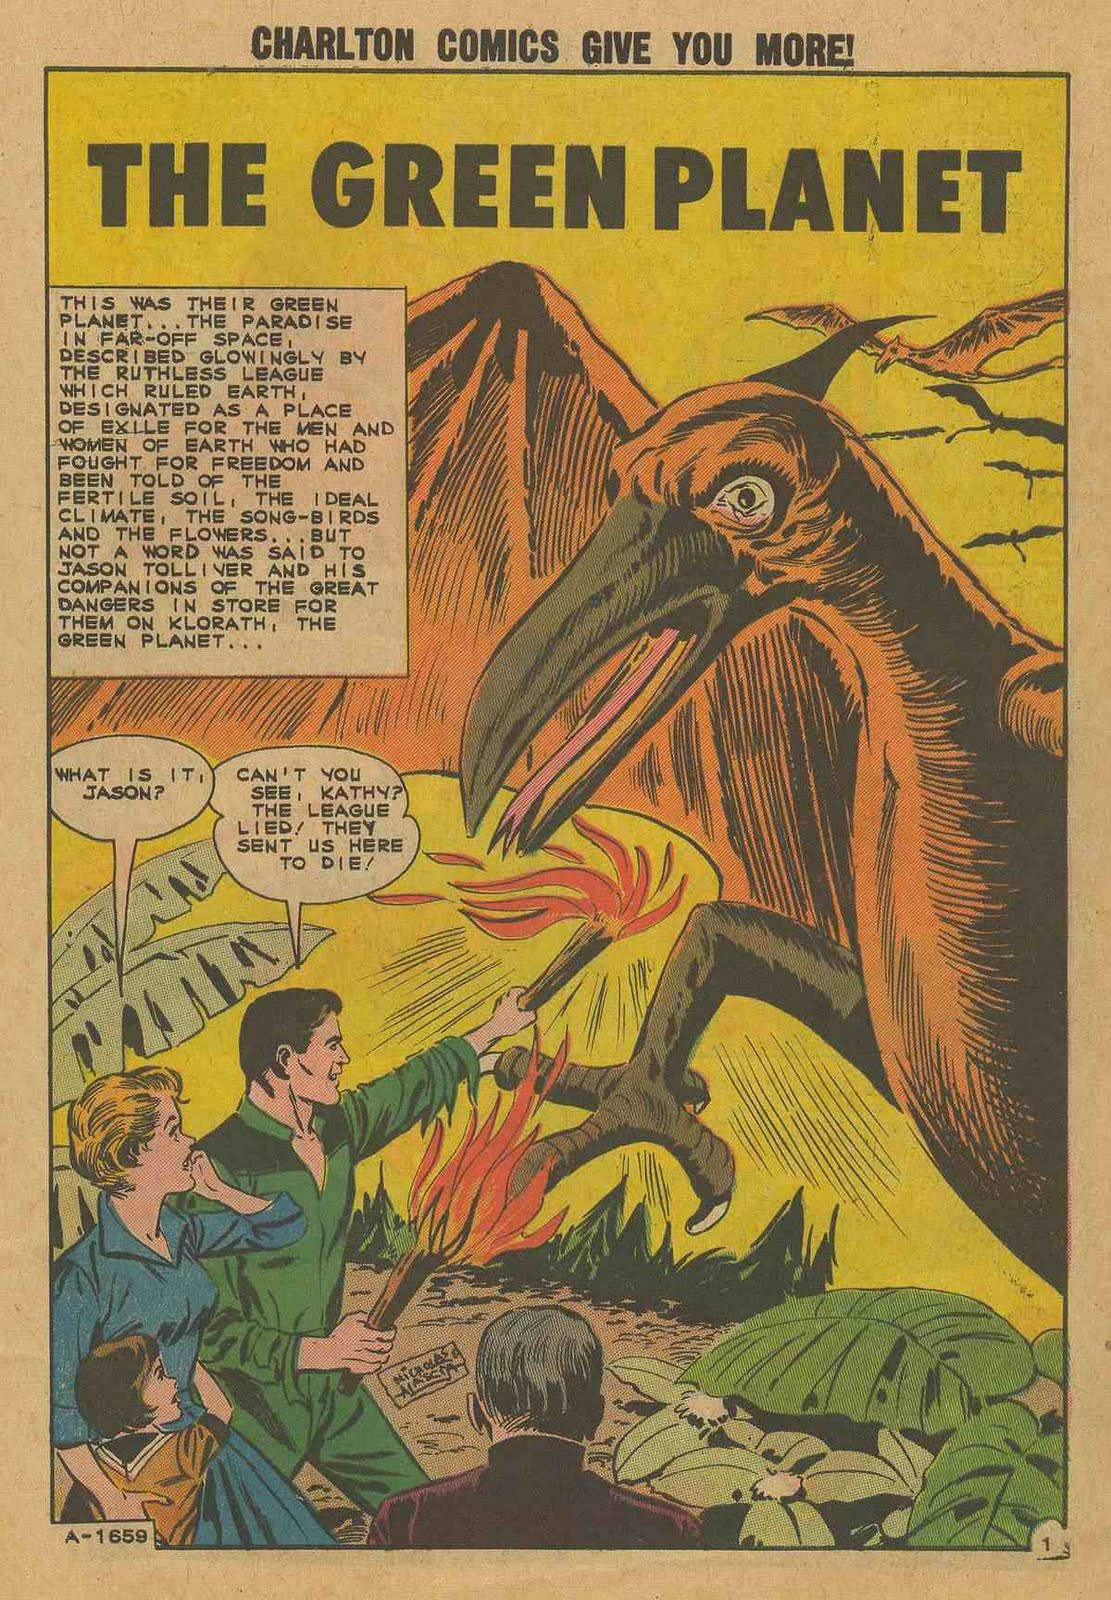 THE CHARLTON COMICS READING LIBRARY: THE GREEN PLANET (one-shot) ,1962